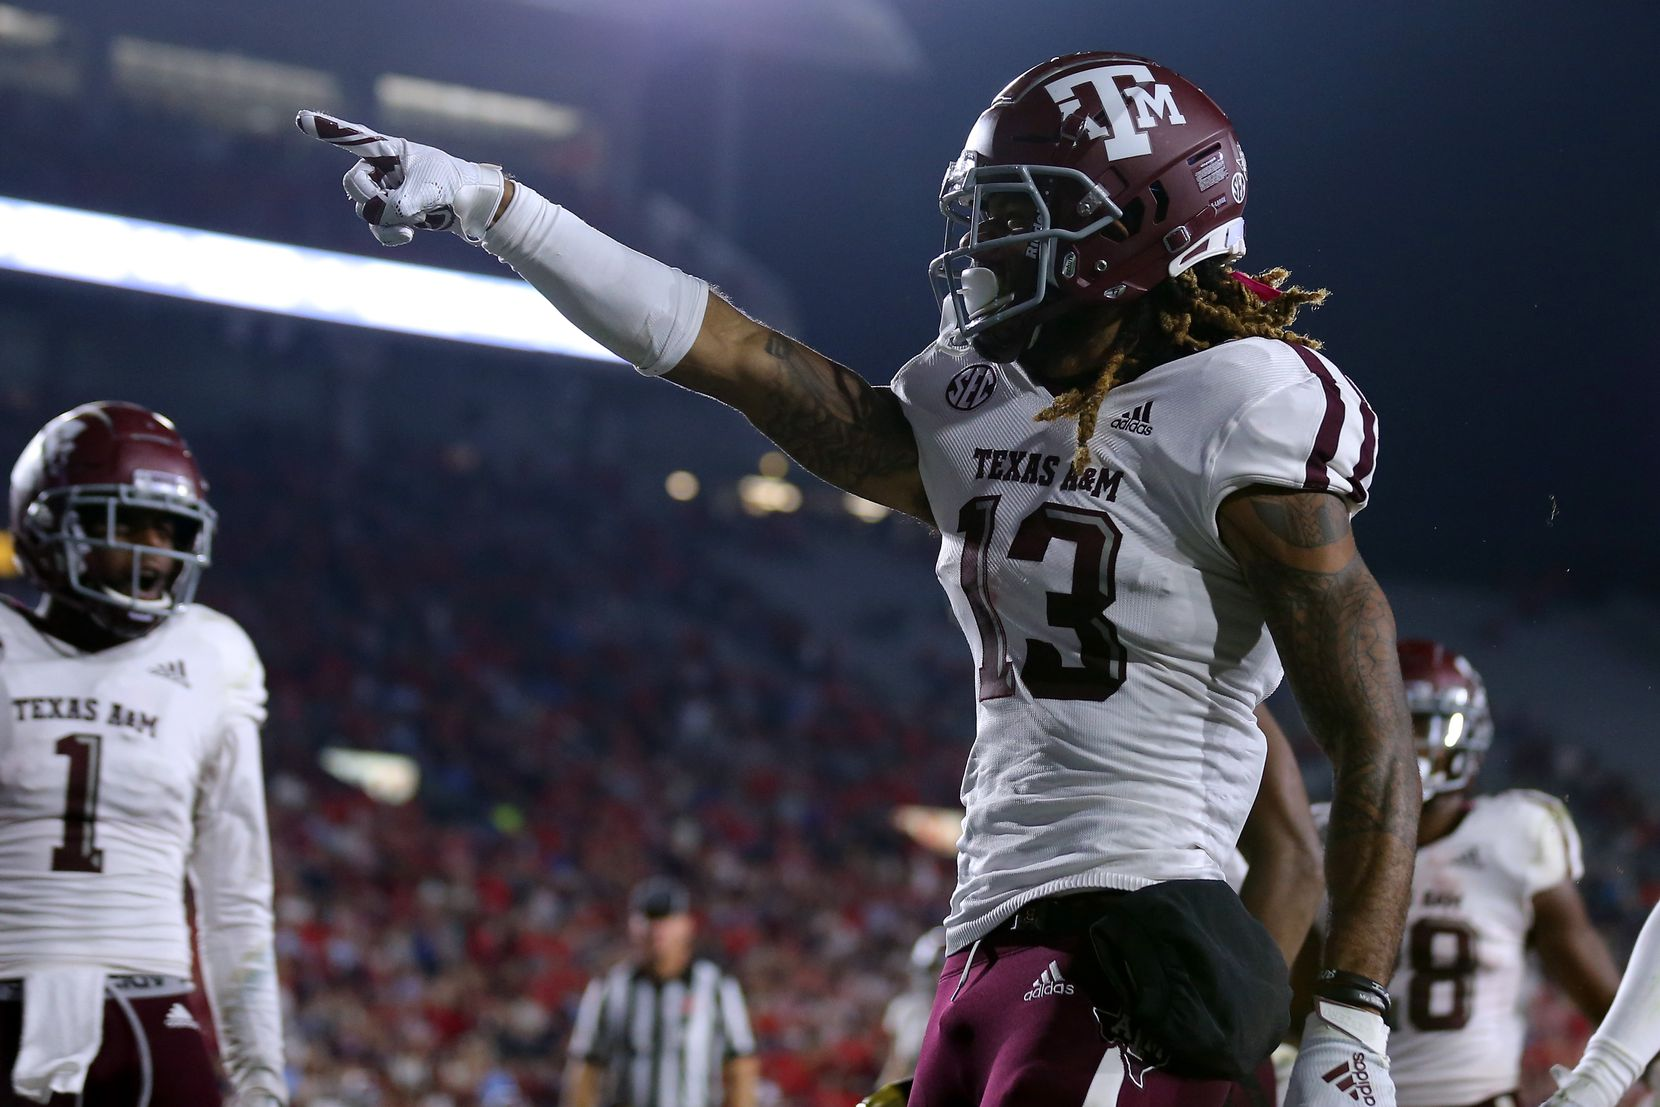 OXFORD, MISSISSIPPI - OCTOBER 19: Kendrick Rogers #13 of the Texas A&M Aggies celebrates a touchdown during the first half against the Mississippi Rebels at Vaught-Hemingway Stadium on October 19, 2019 in Oxford, Mississippi. (Photo by Jonathan Bachman/Getty Images)